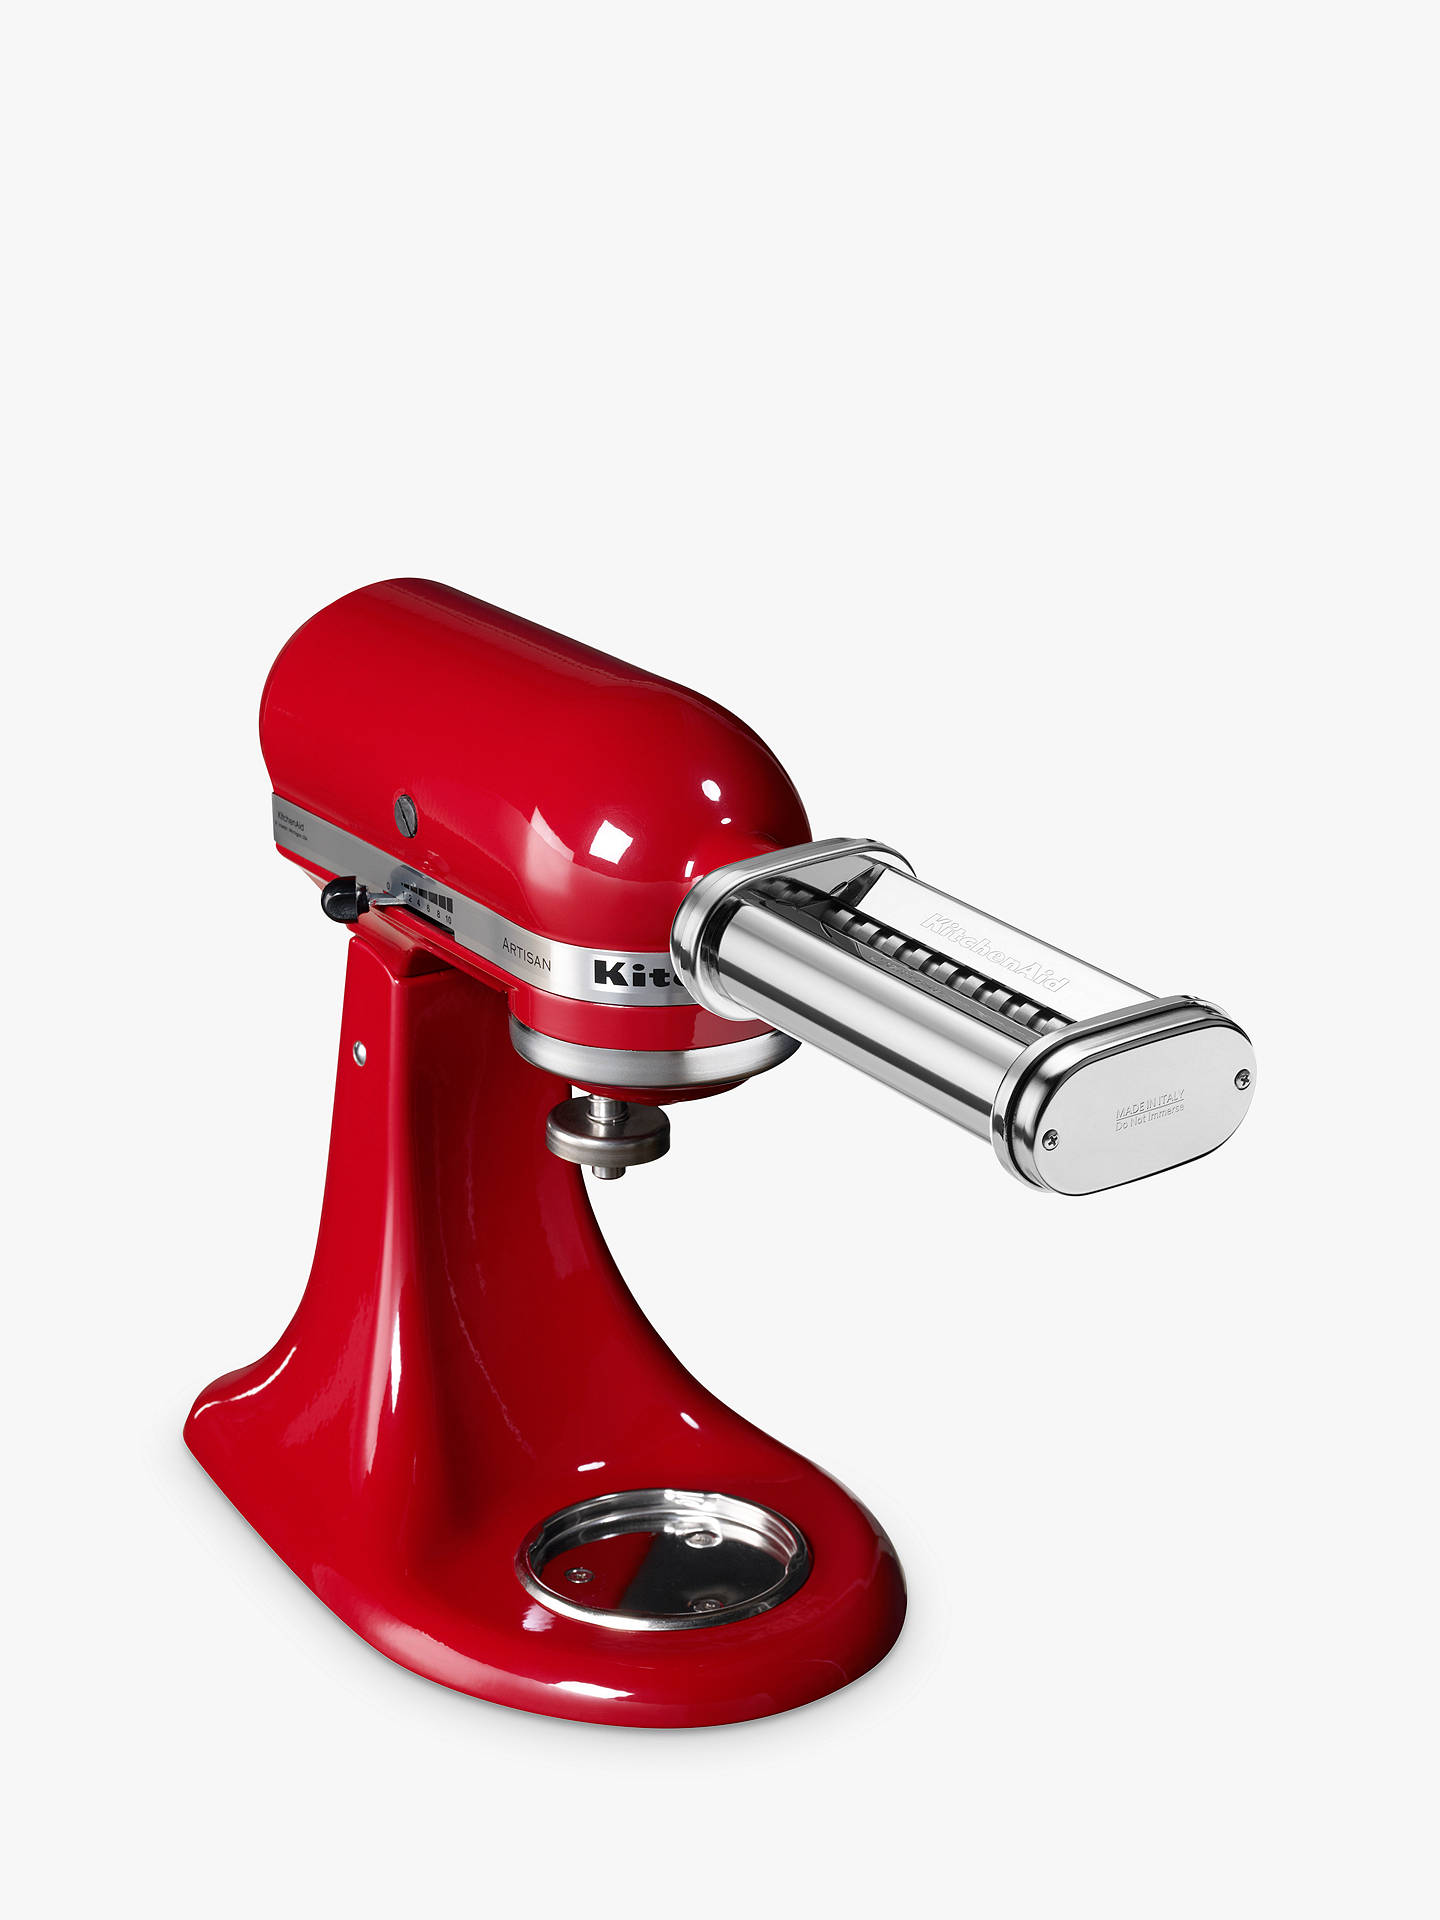 Buy KitchenAid 3-piece Pasta Attachment Set for Stand Mixers Online at johnlewis.com